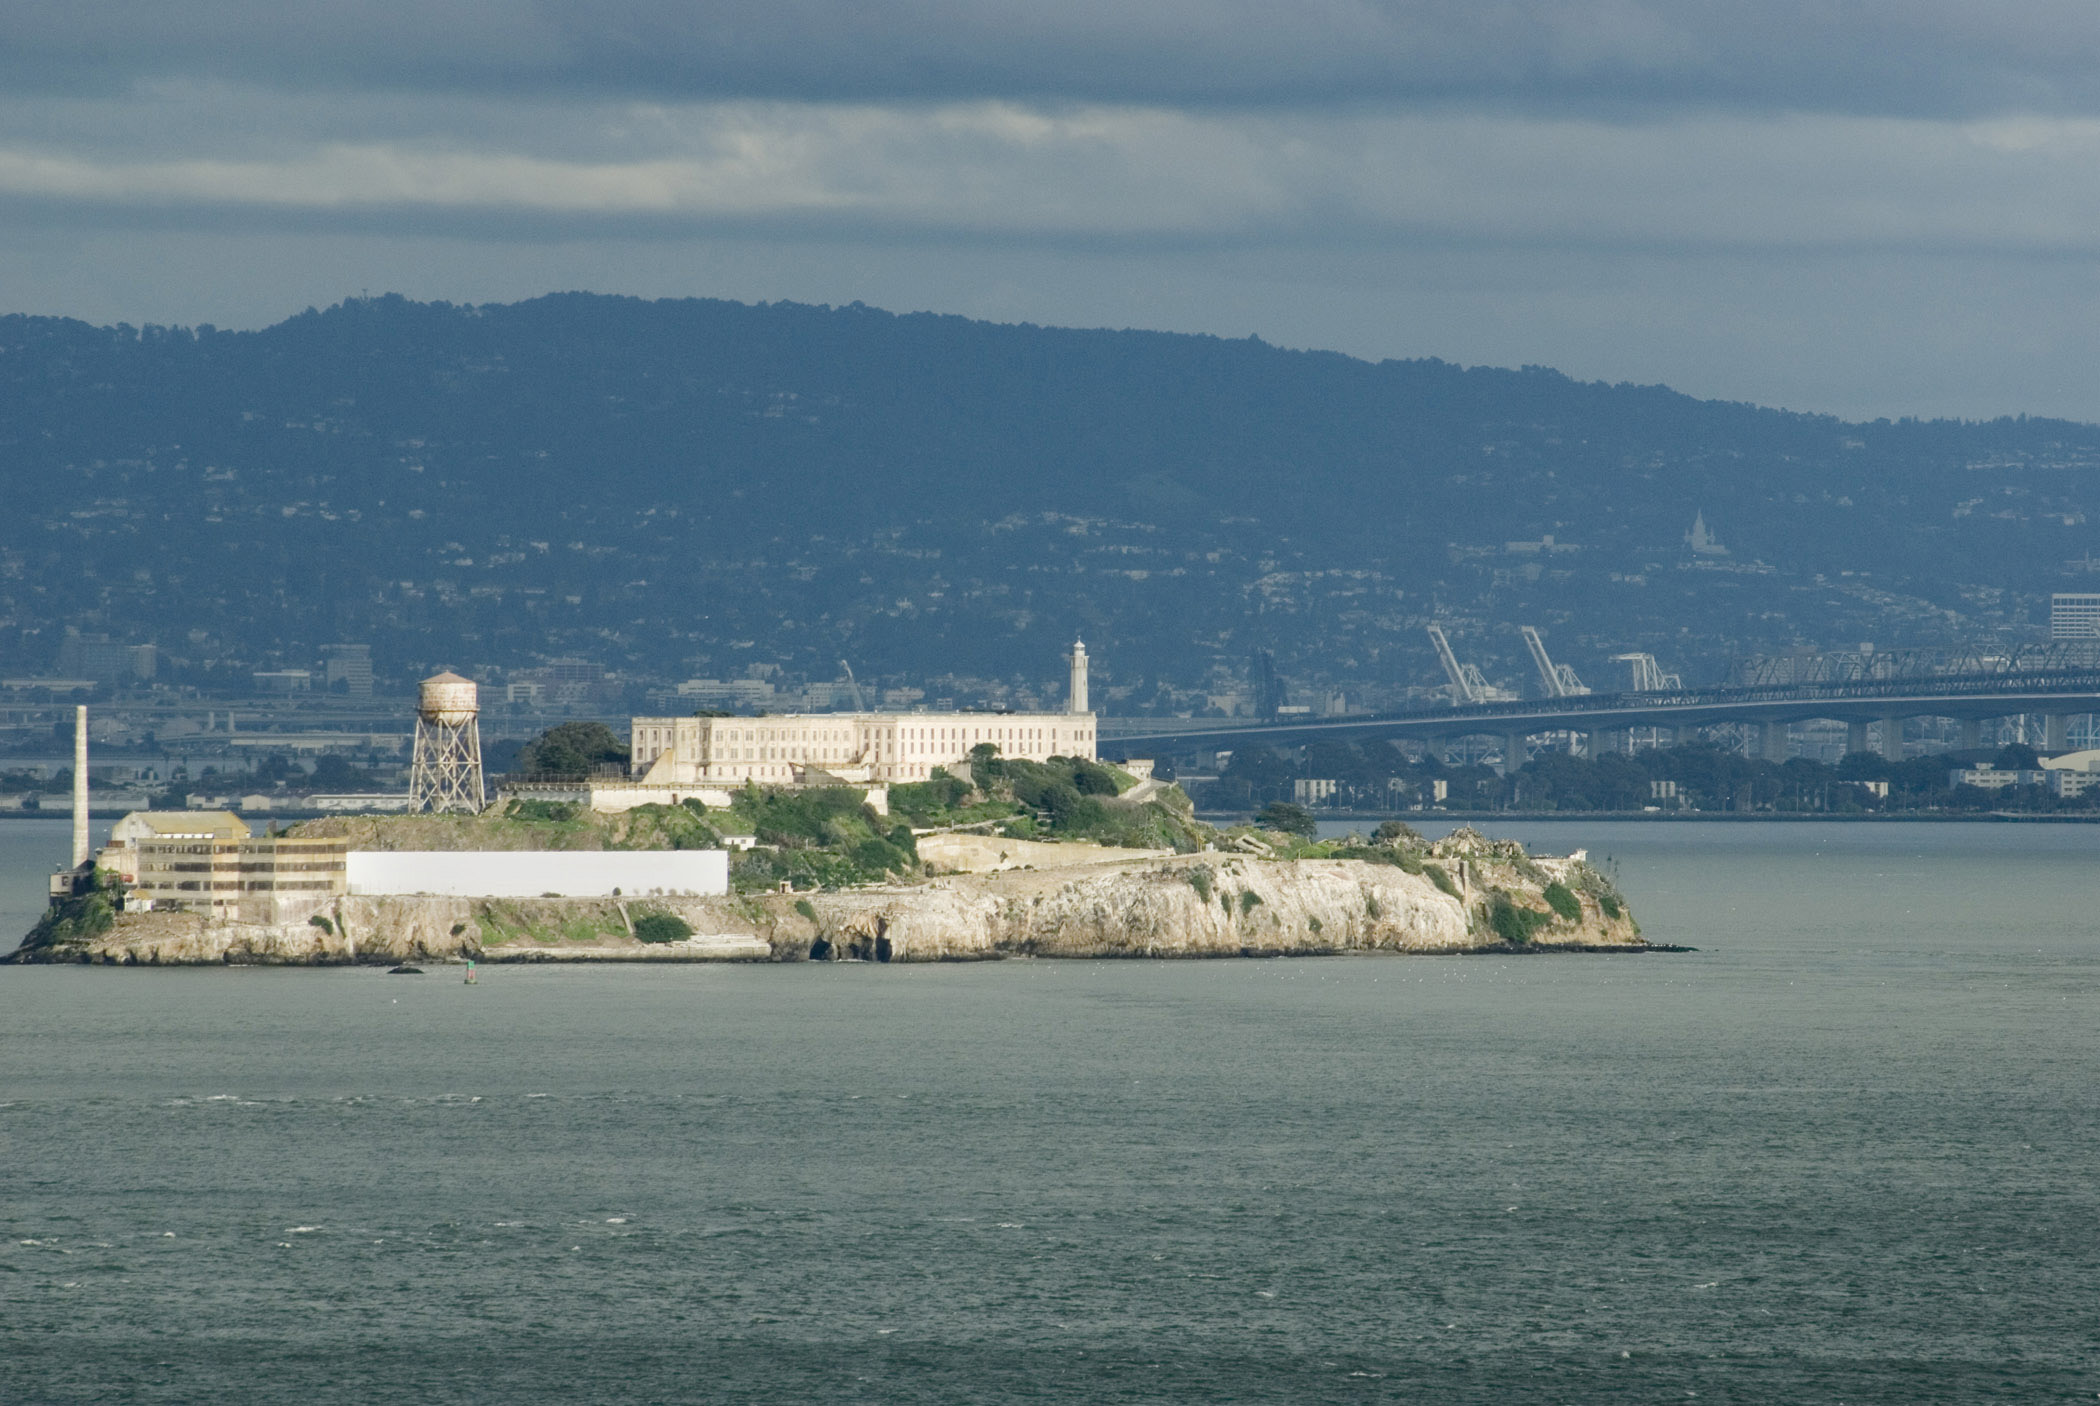 View of the disused Alcatraz Island prison buildings in San Francisco bay, now a popular tourist attraction